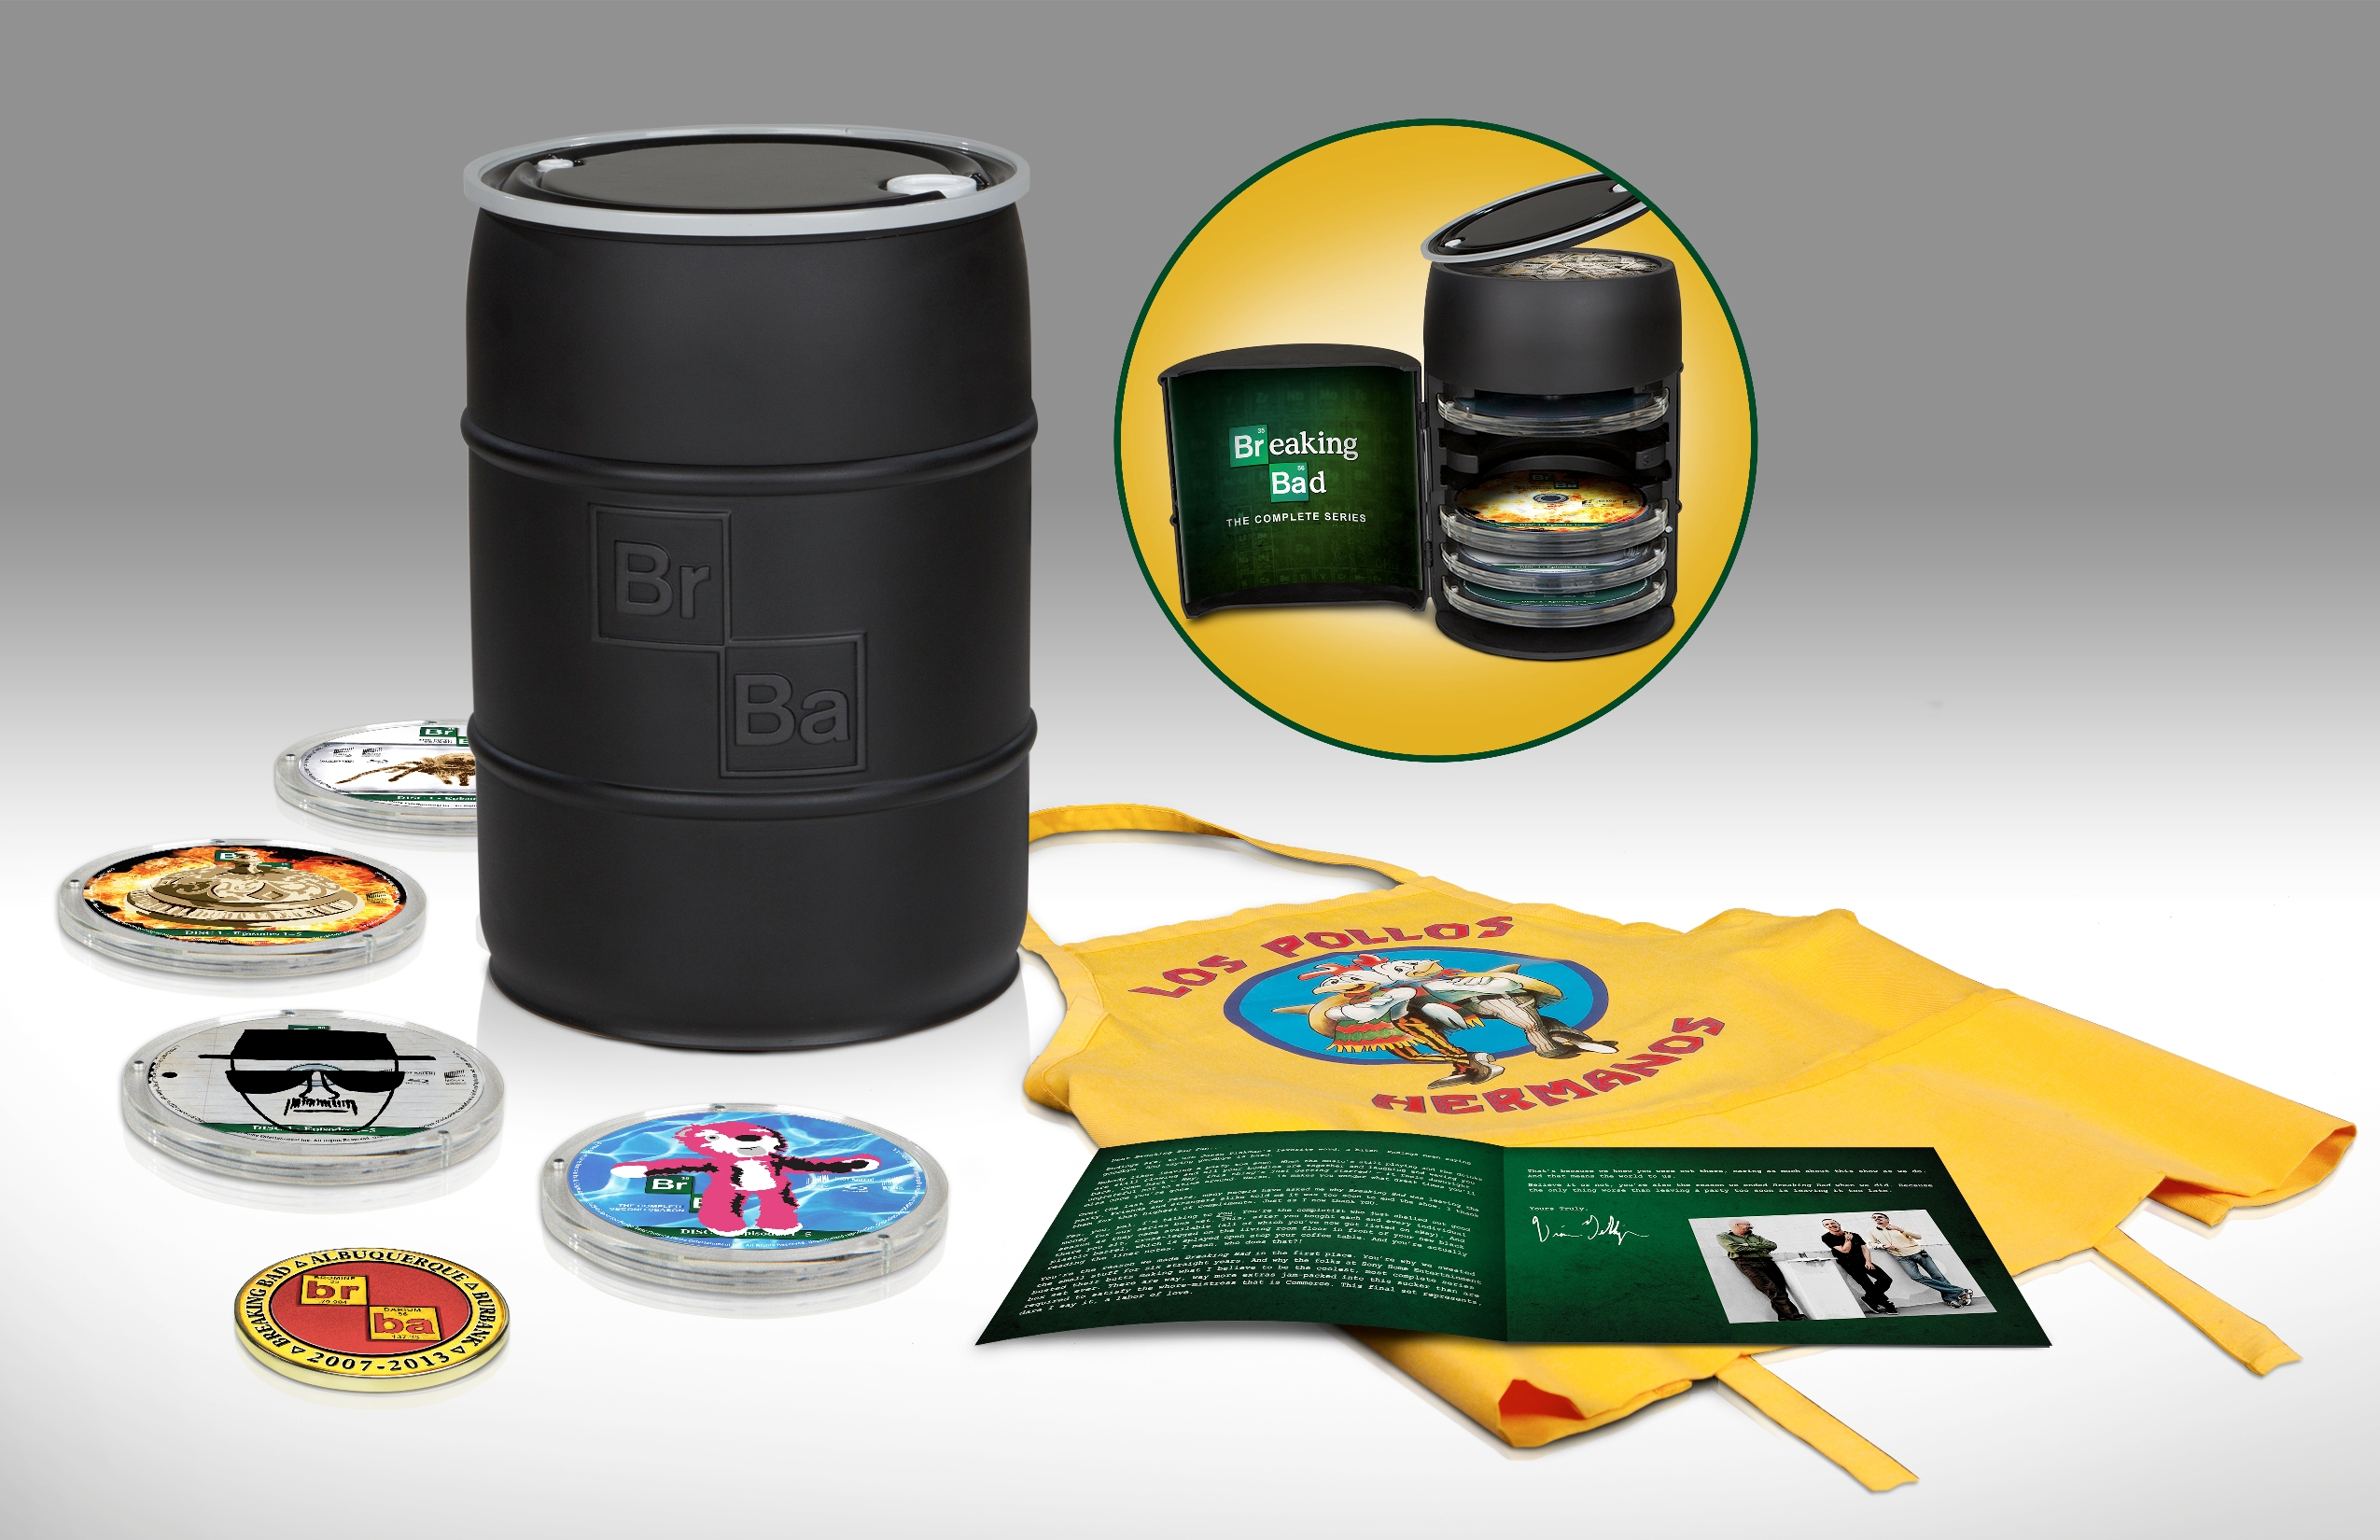 BREAKING BAD Complete Series Blu-ray Comes Stuffed in a Barrel Full of